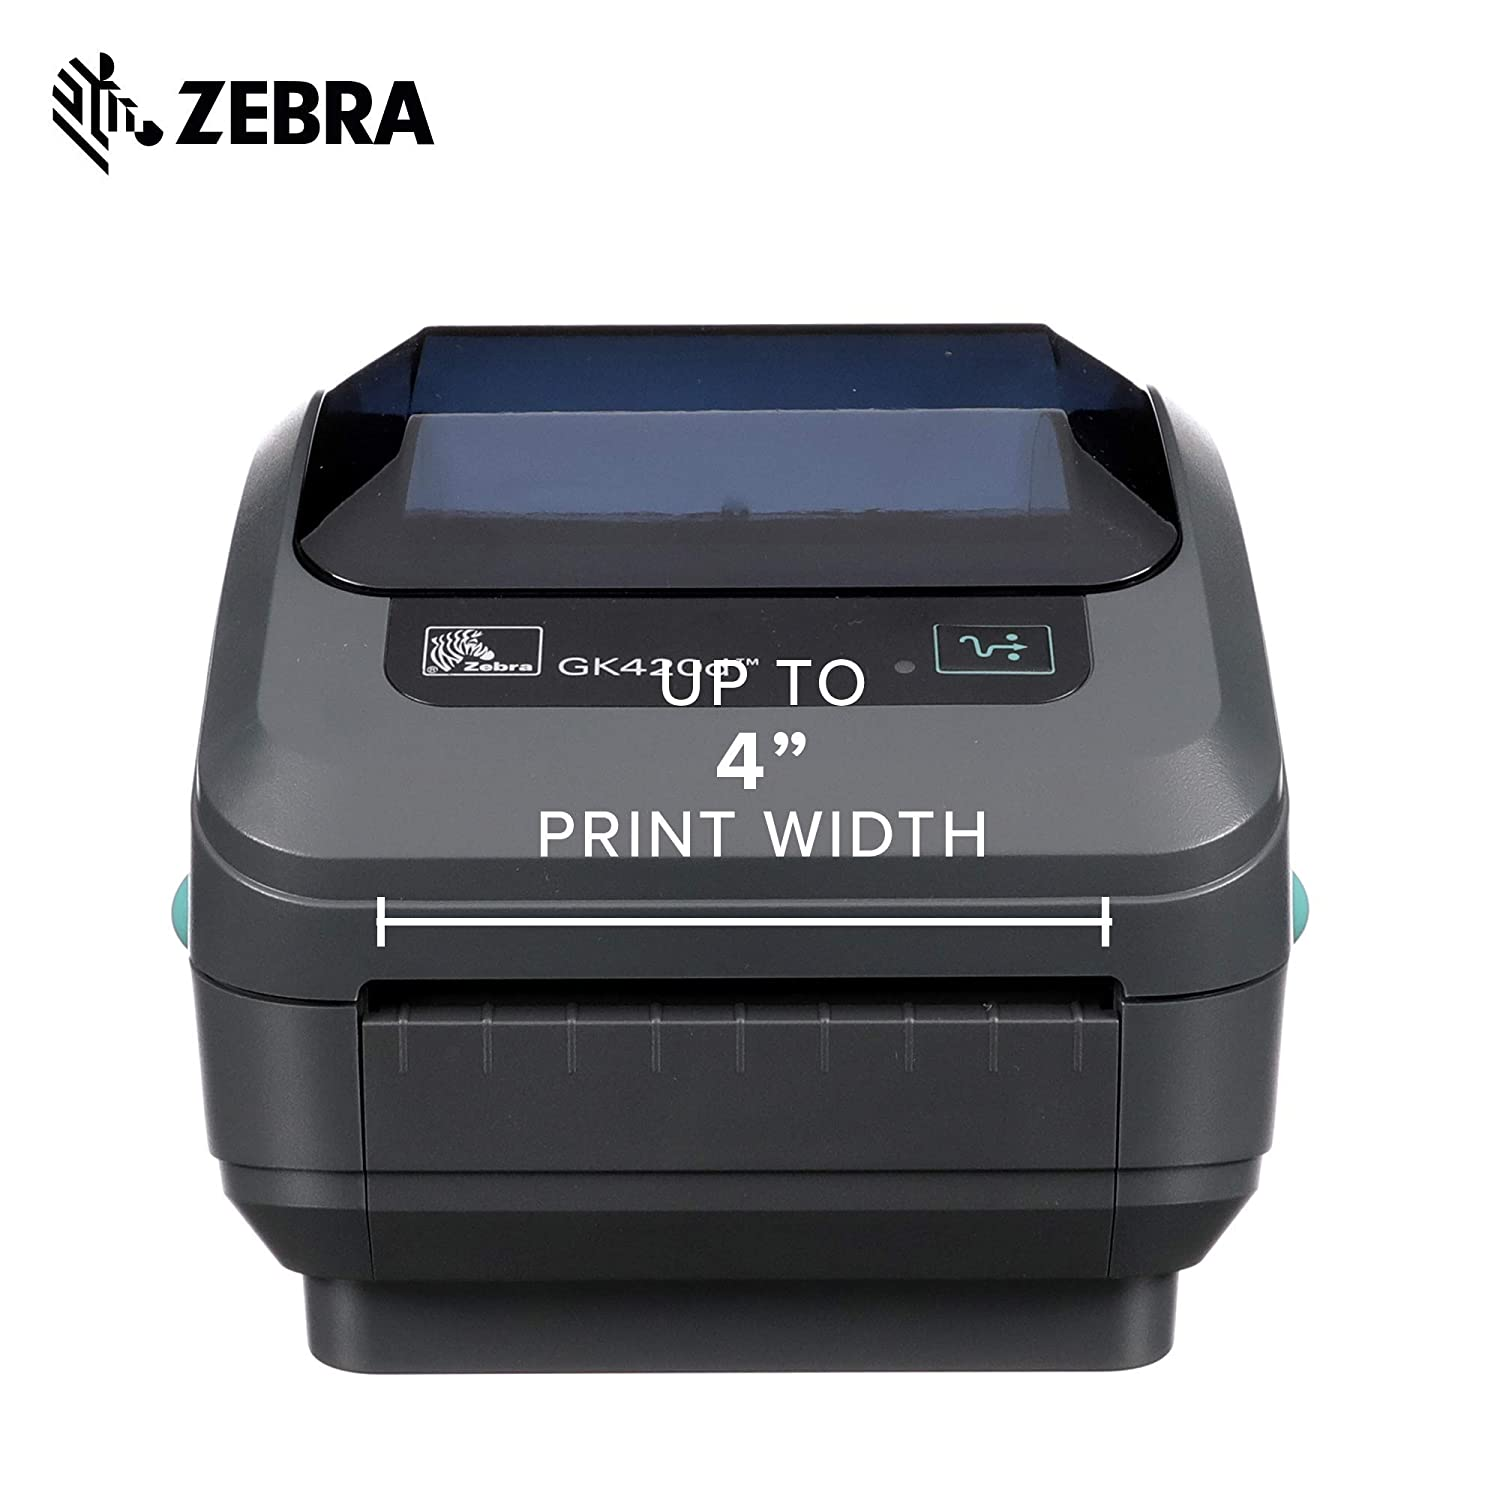 Zebra - GK420d Direct Thermal Desktop Printer for Labels, Receipts, Barcodes, Tags, and Wrist Bands - Print Width of 4 in - USB and Ethernet Port ...